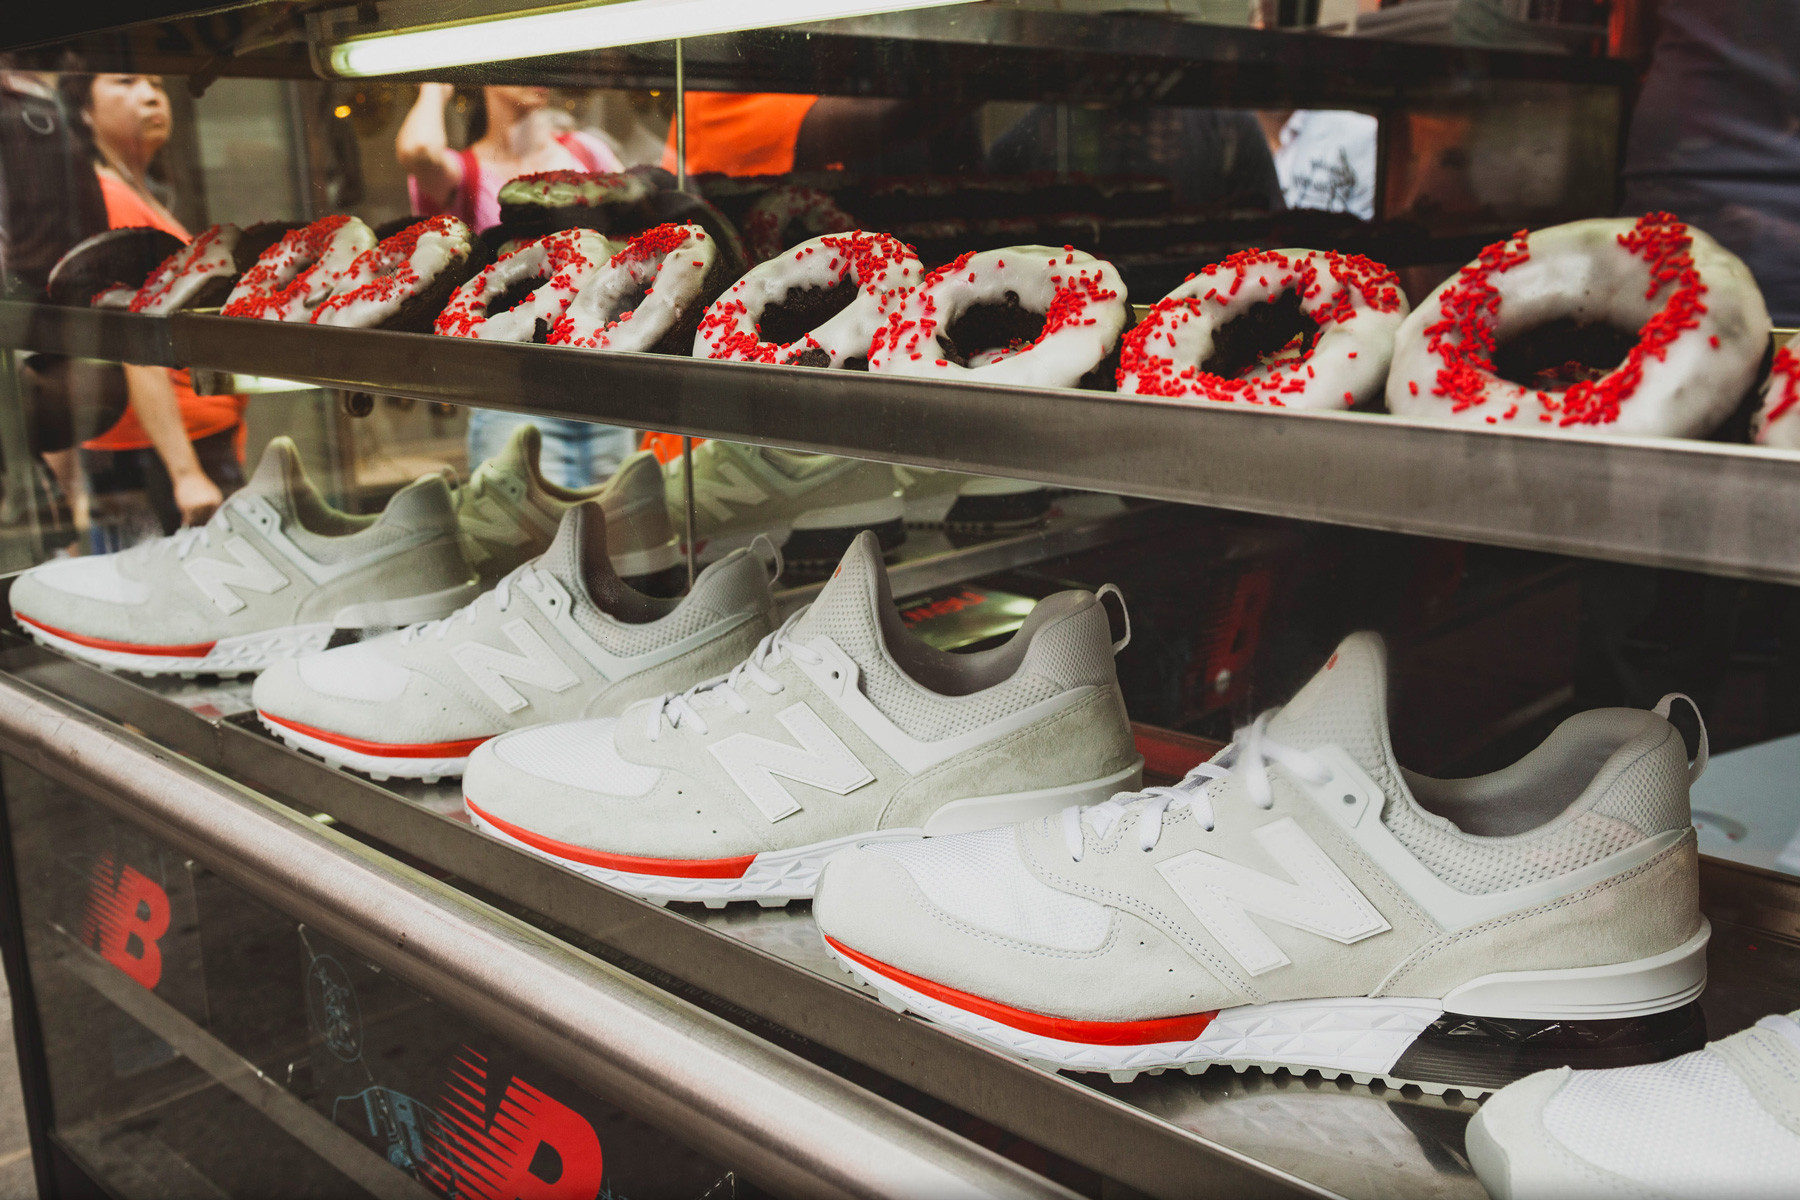 new balance shop in new york city